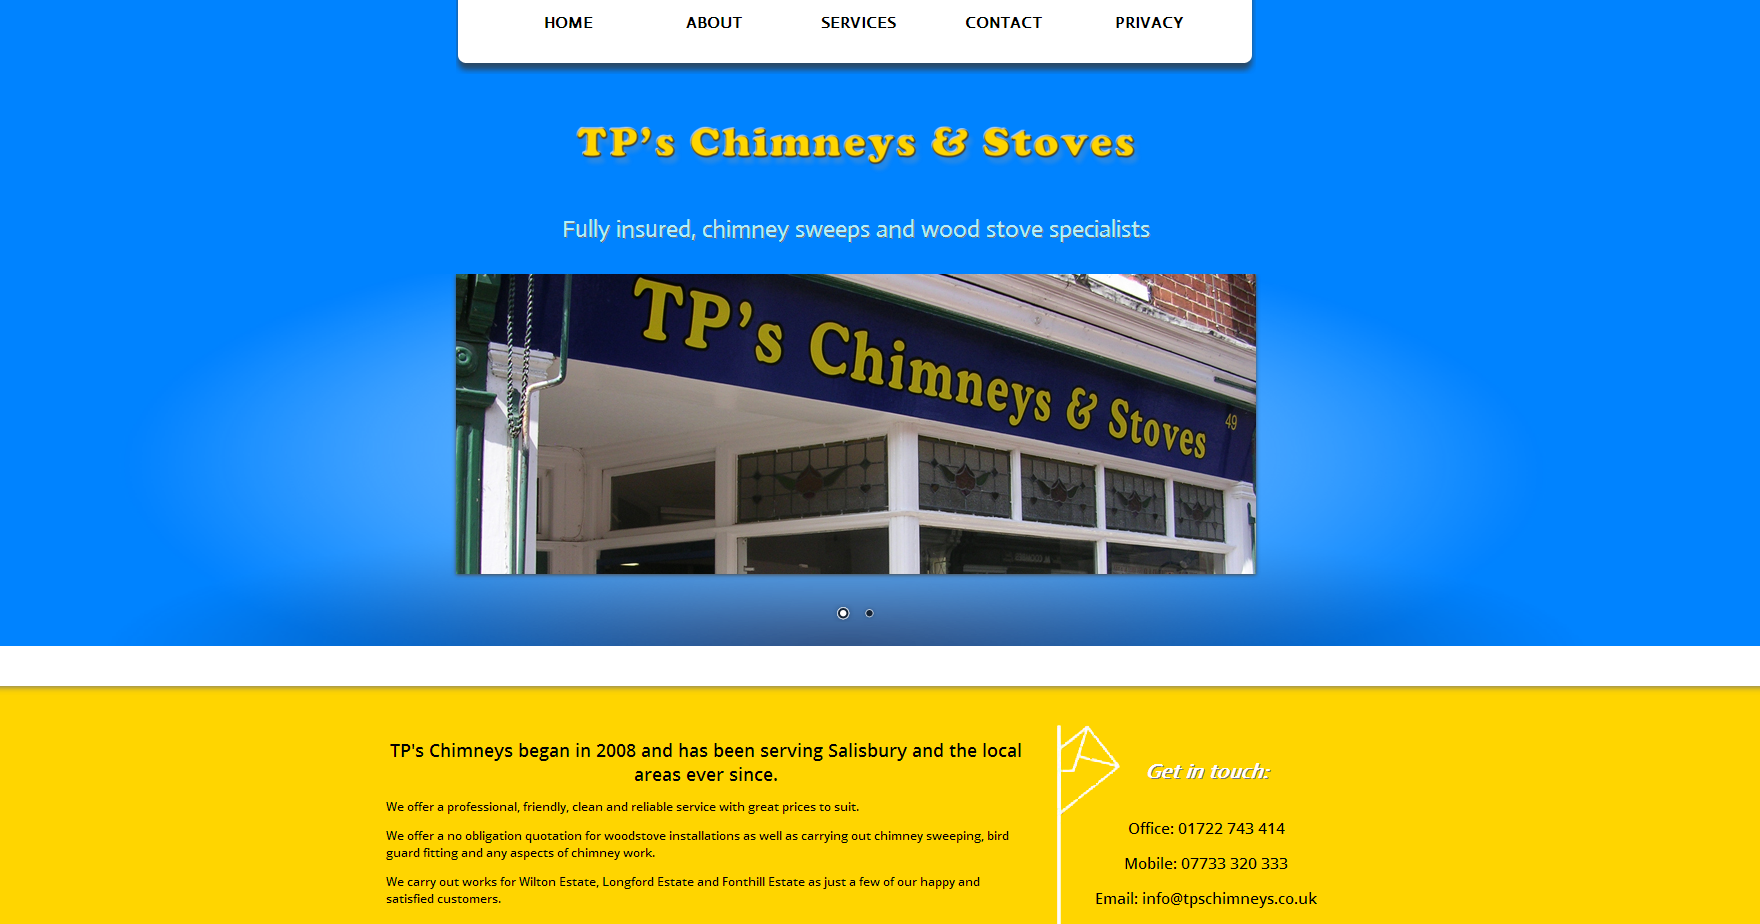 TPs Chimneys and Stoves